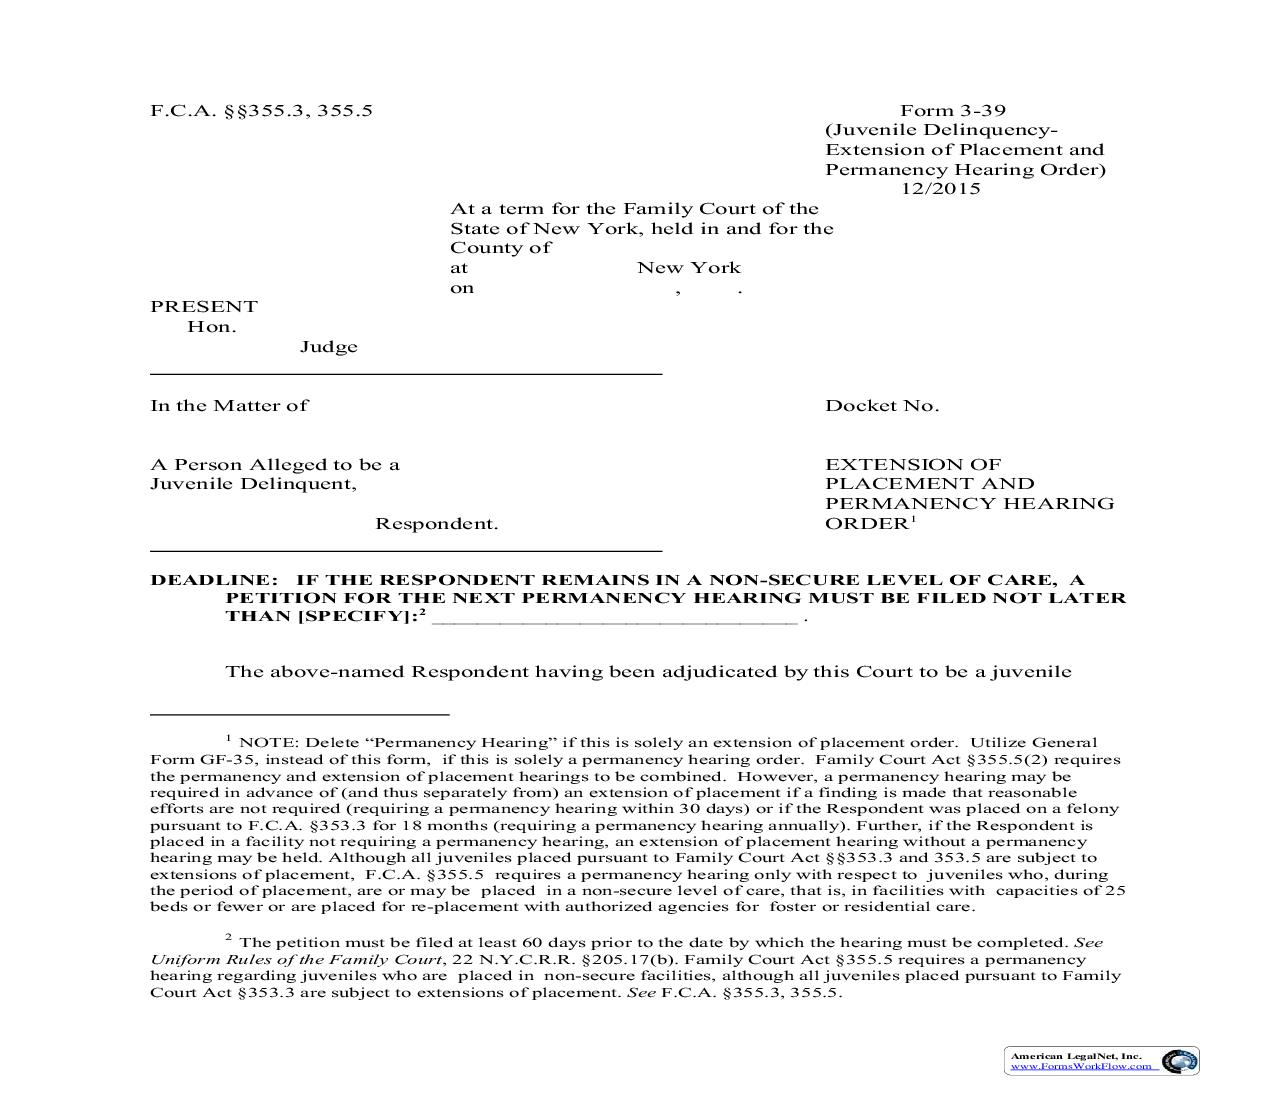 Extension Of Placement And Permanency Hearing Order {3-39} | Pdf Fpdf Doc Docx | New York